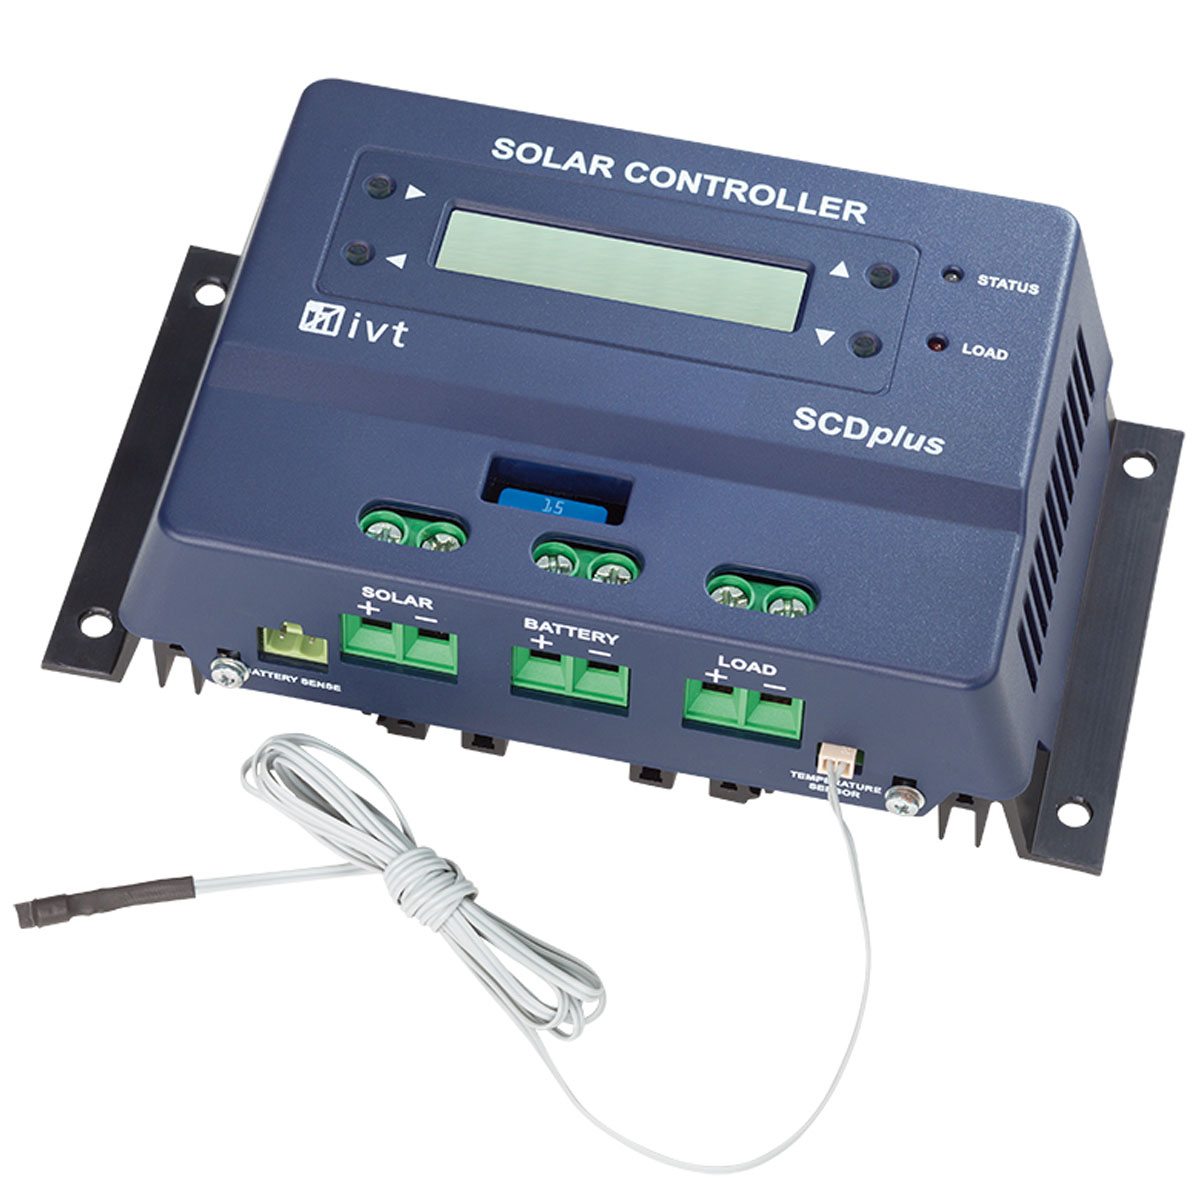 SOLAR-CONTROLLER SCplus 48 V, 40 A - with display